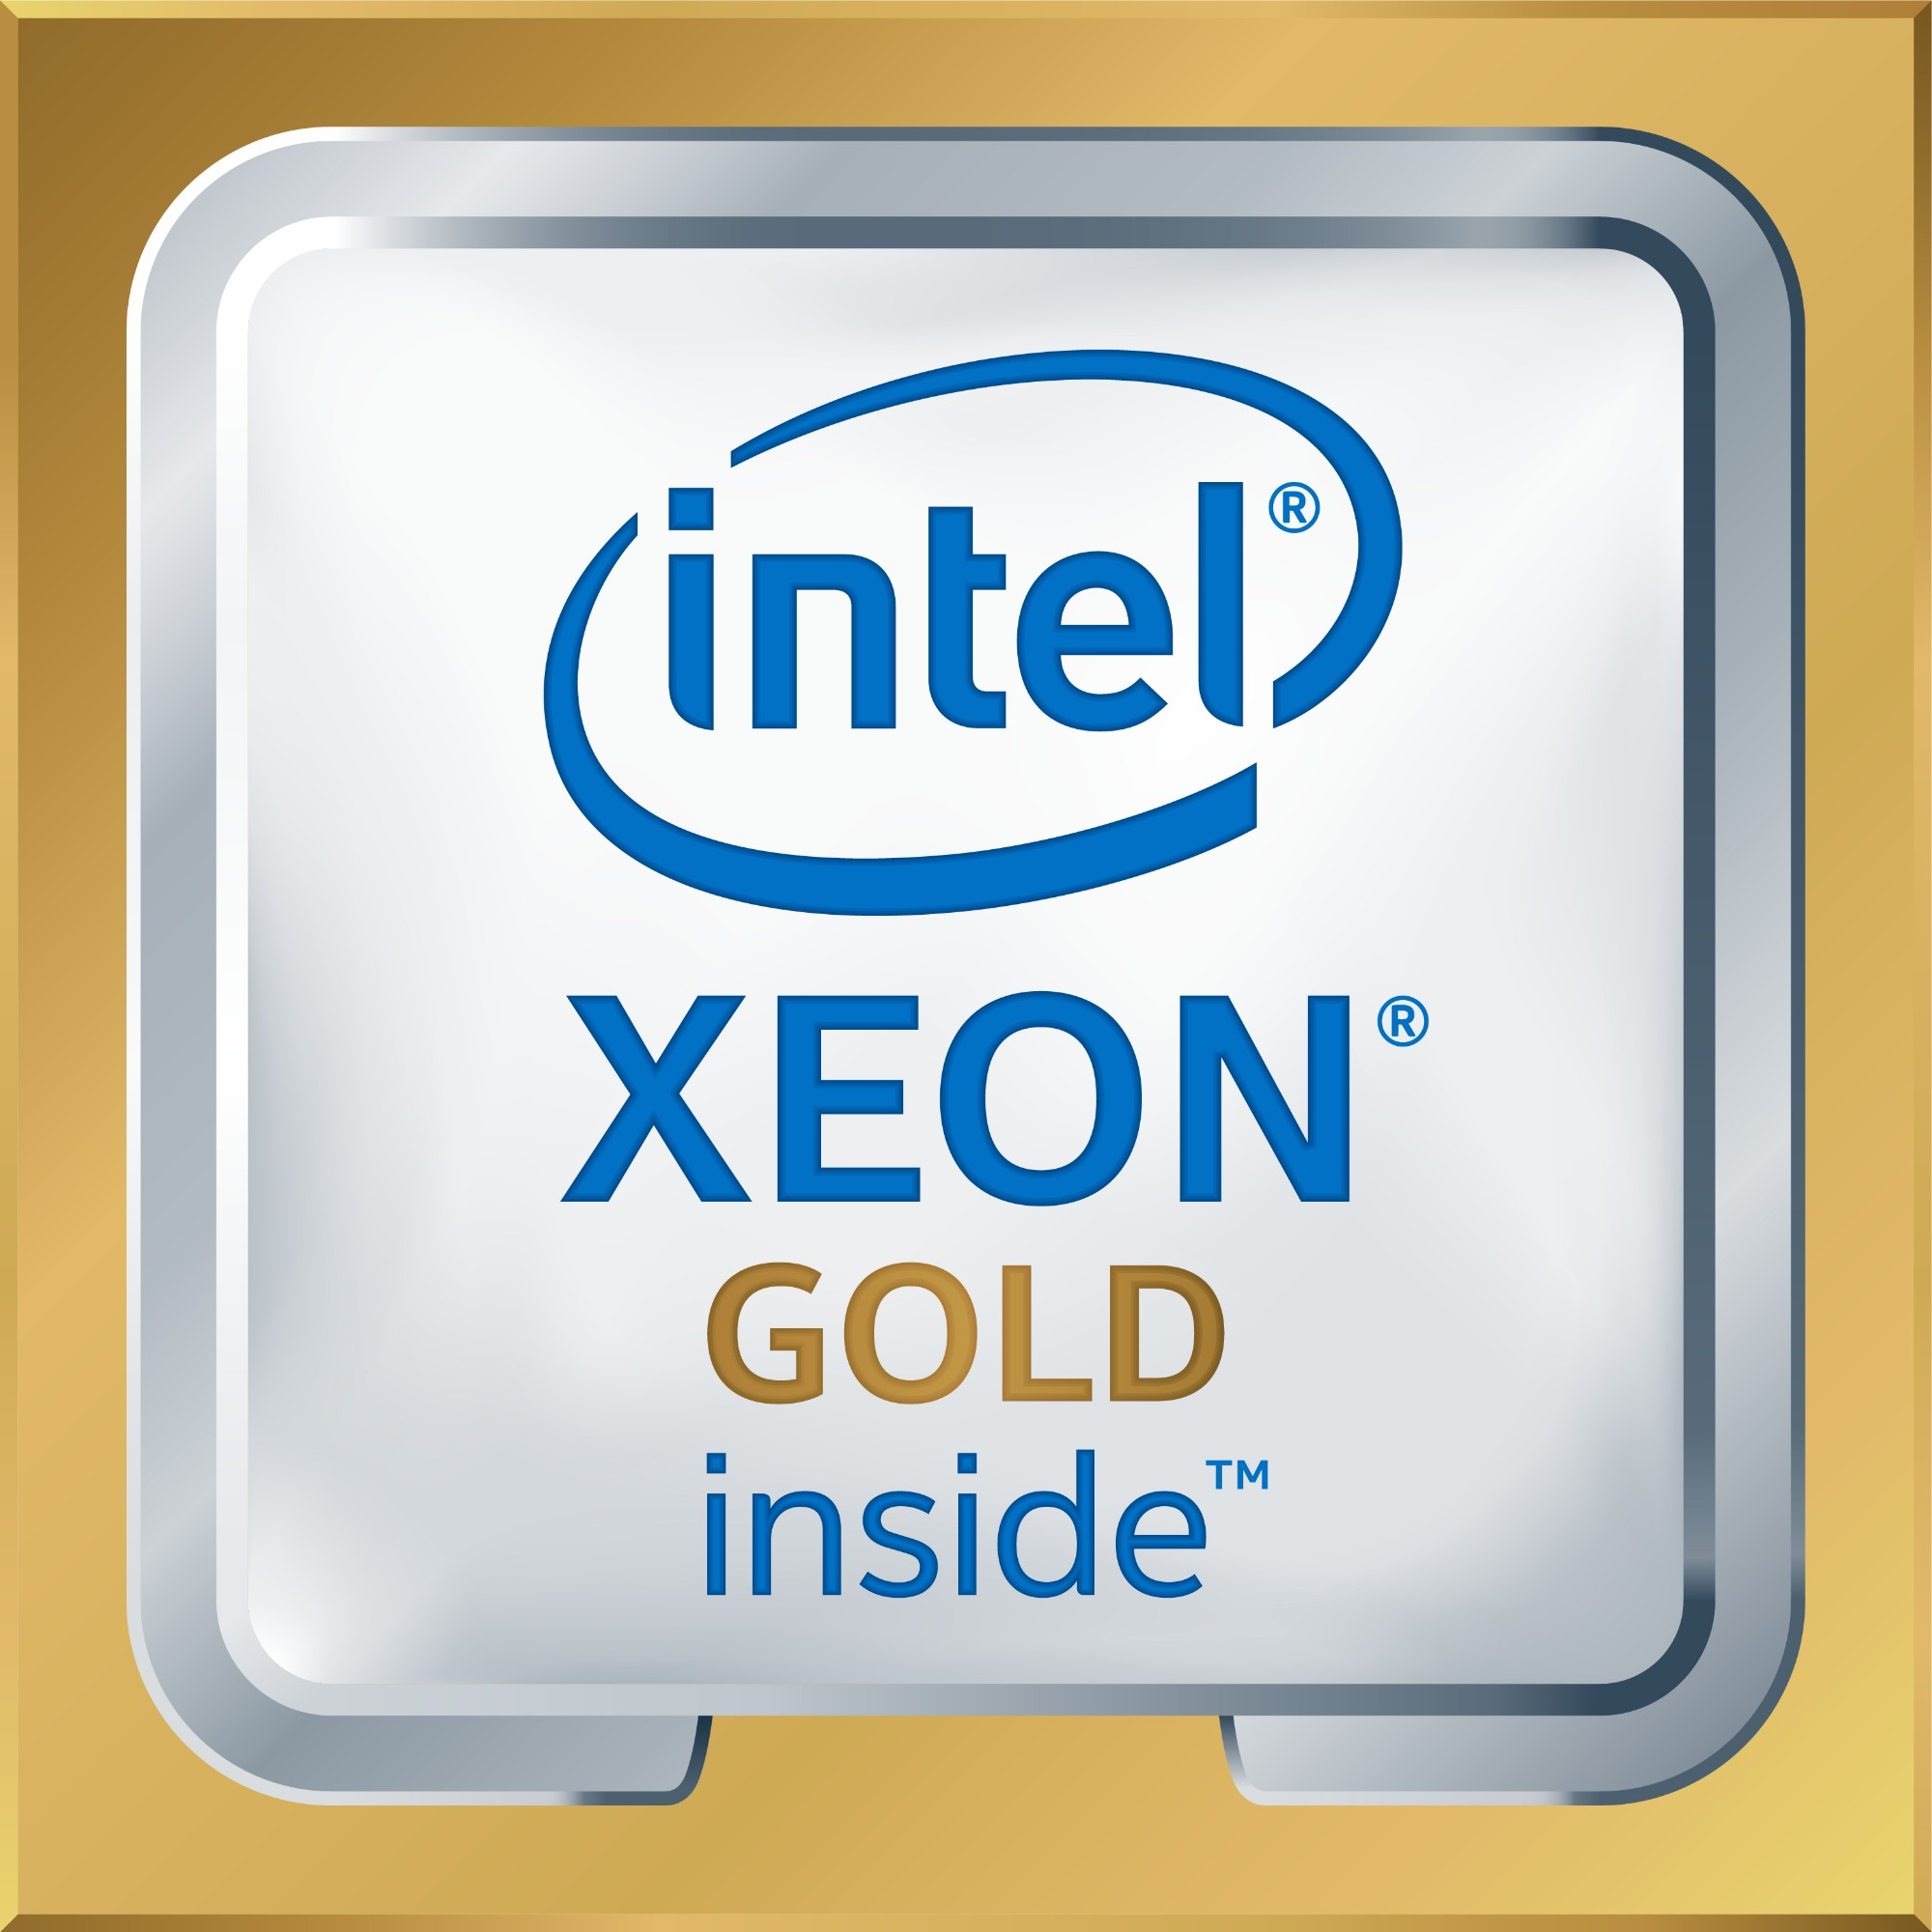 Intel Xeon 6134 processor 3.20 GHz 24.75 MB L3